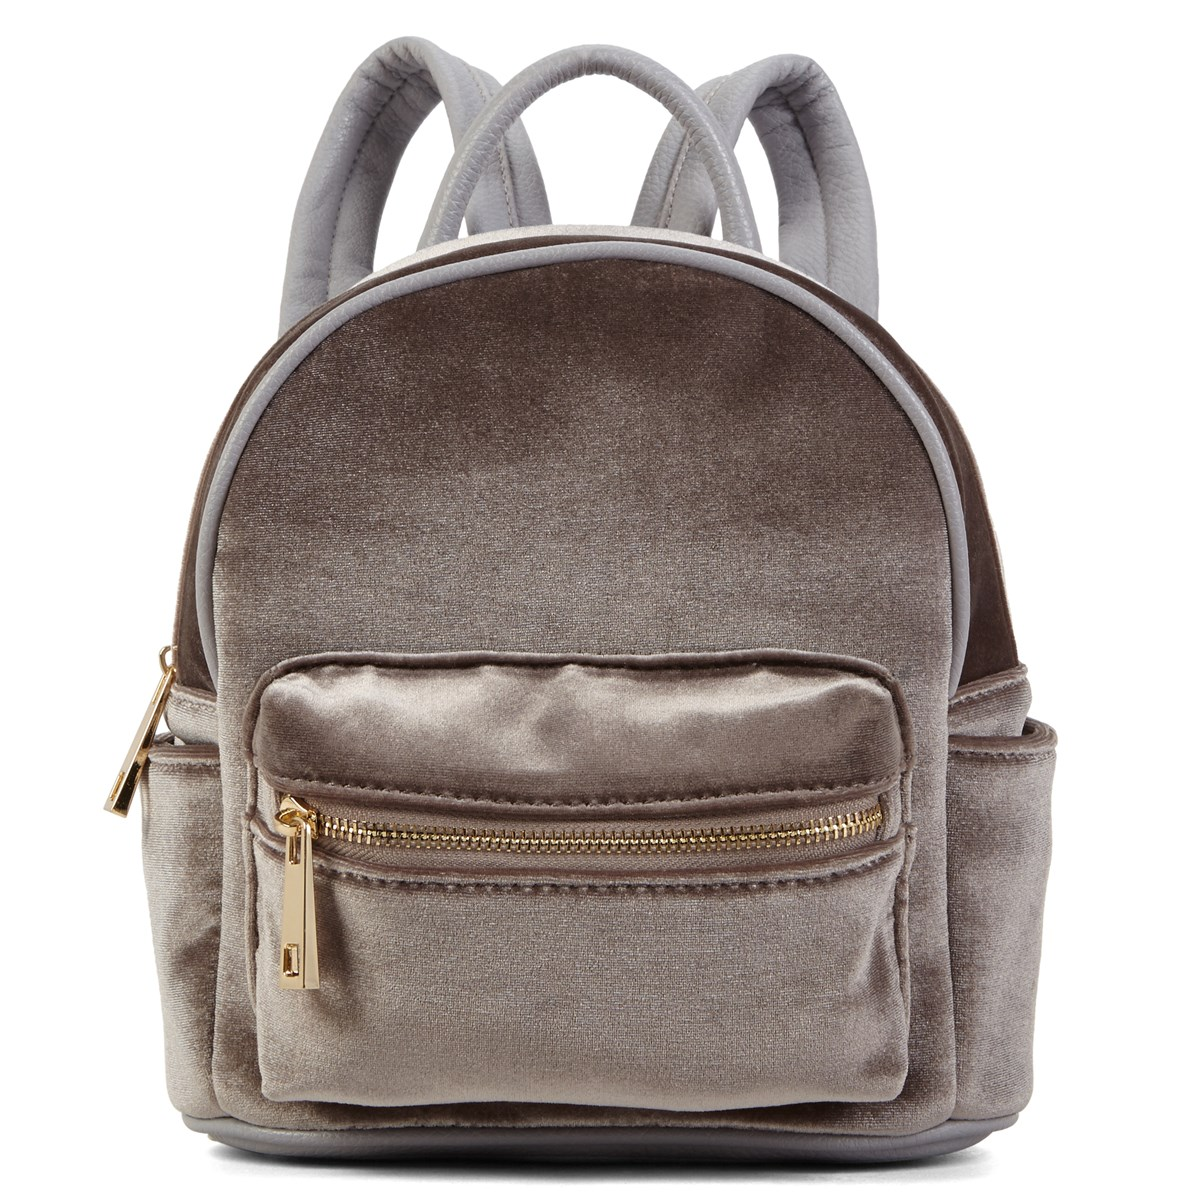 b1639b3704 Women s Grey Velvet Backpack. Previous. default view ...